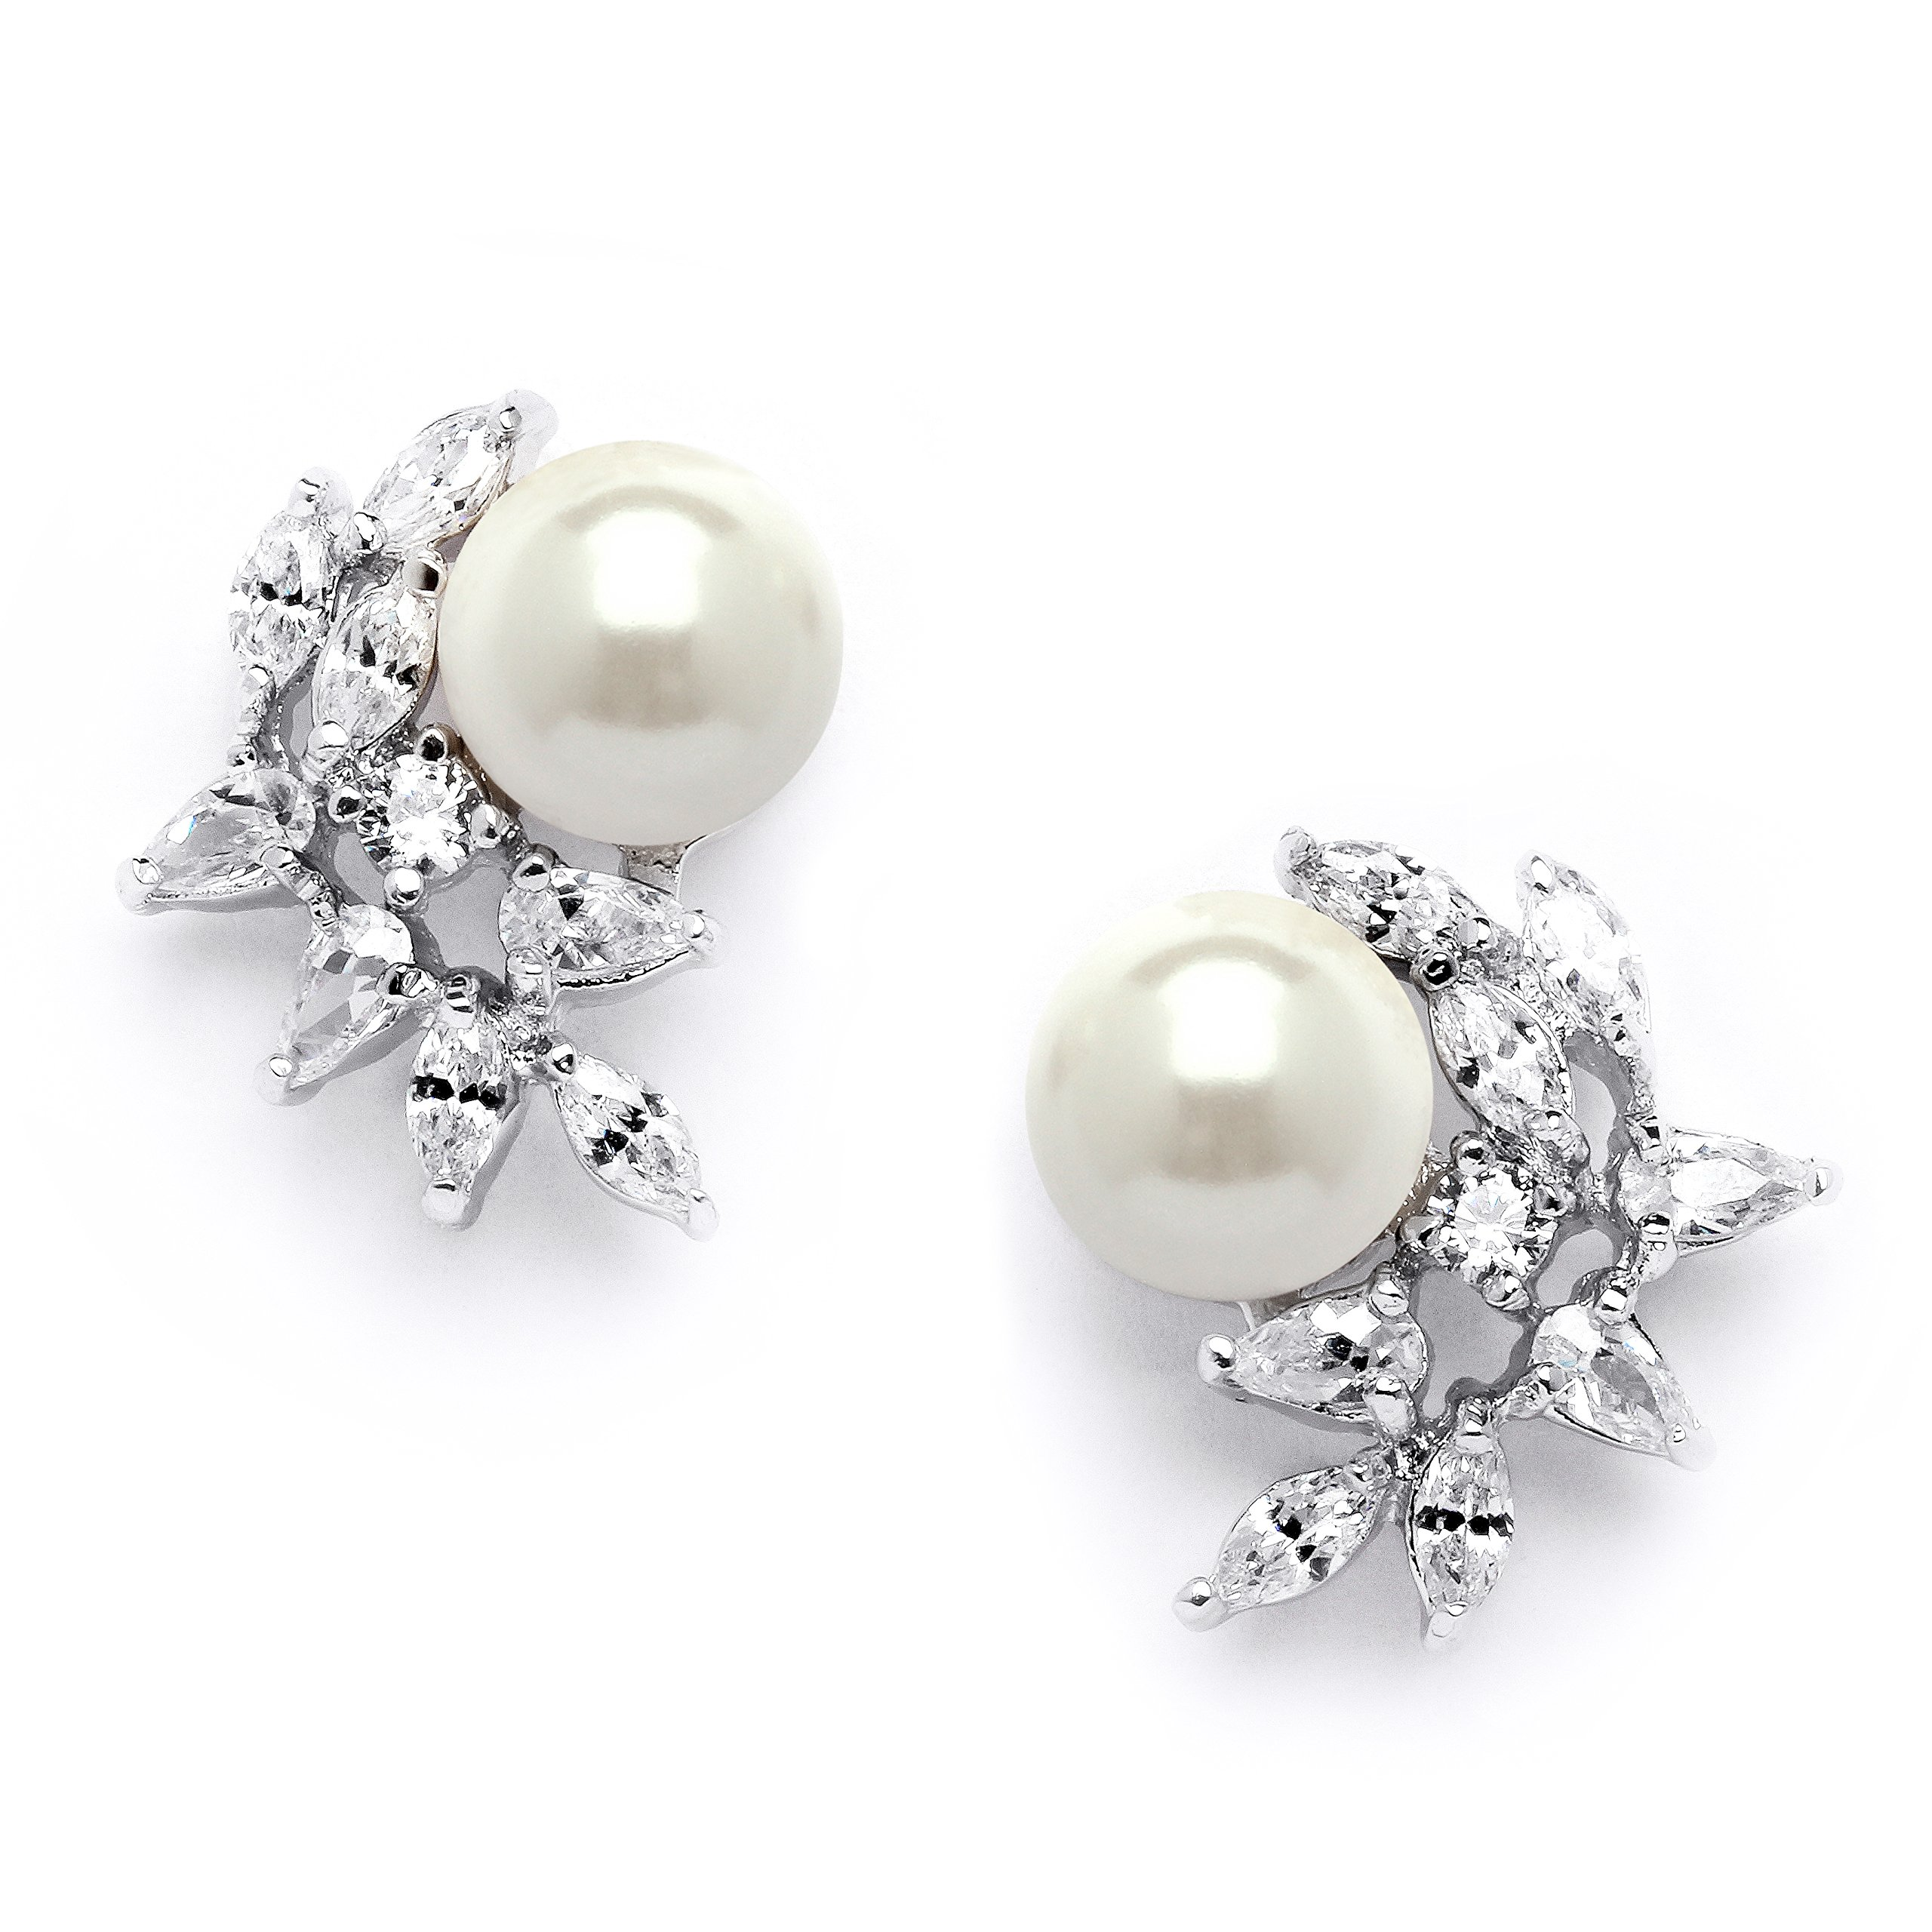 Mariell Ivory Pearls and CZ Cluster Wedding Earrings for Brides, Bridesmaids & Mother of the Bride by Mariell (Image #1)